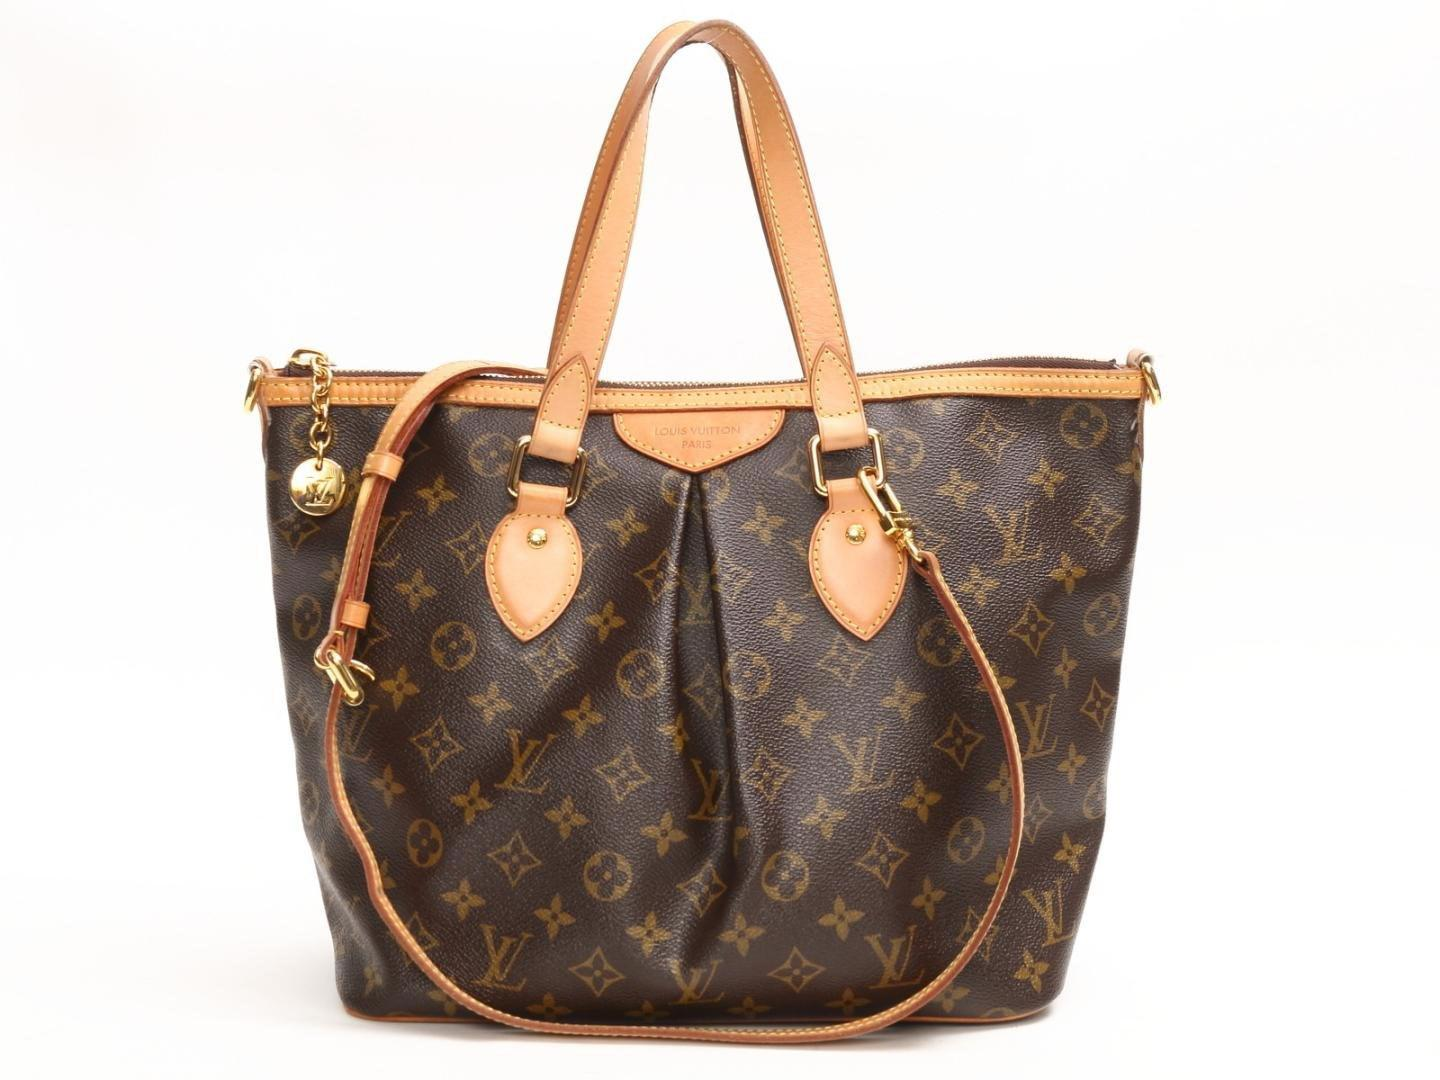 224eff99642fe Louis Vuitton Palermo Pm Handbag Shoulder Bag Monogram Canvas M40145 ...